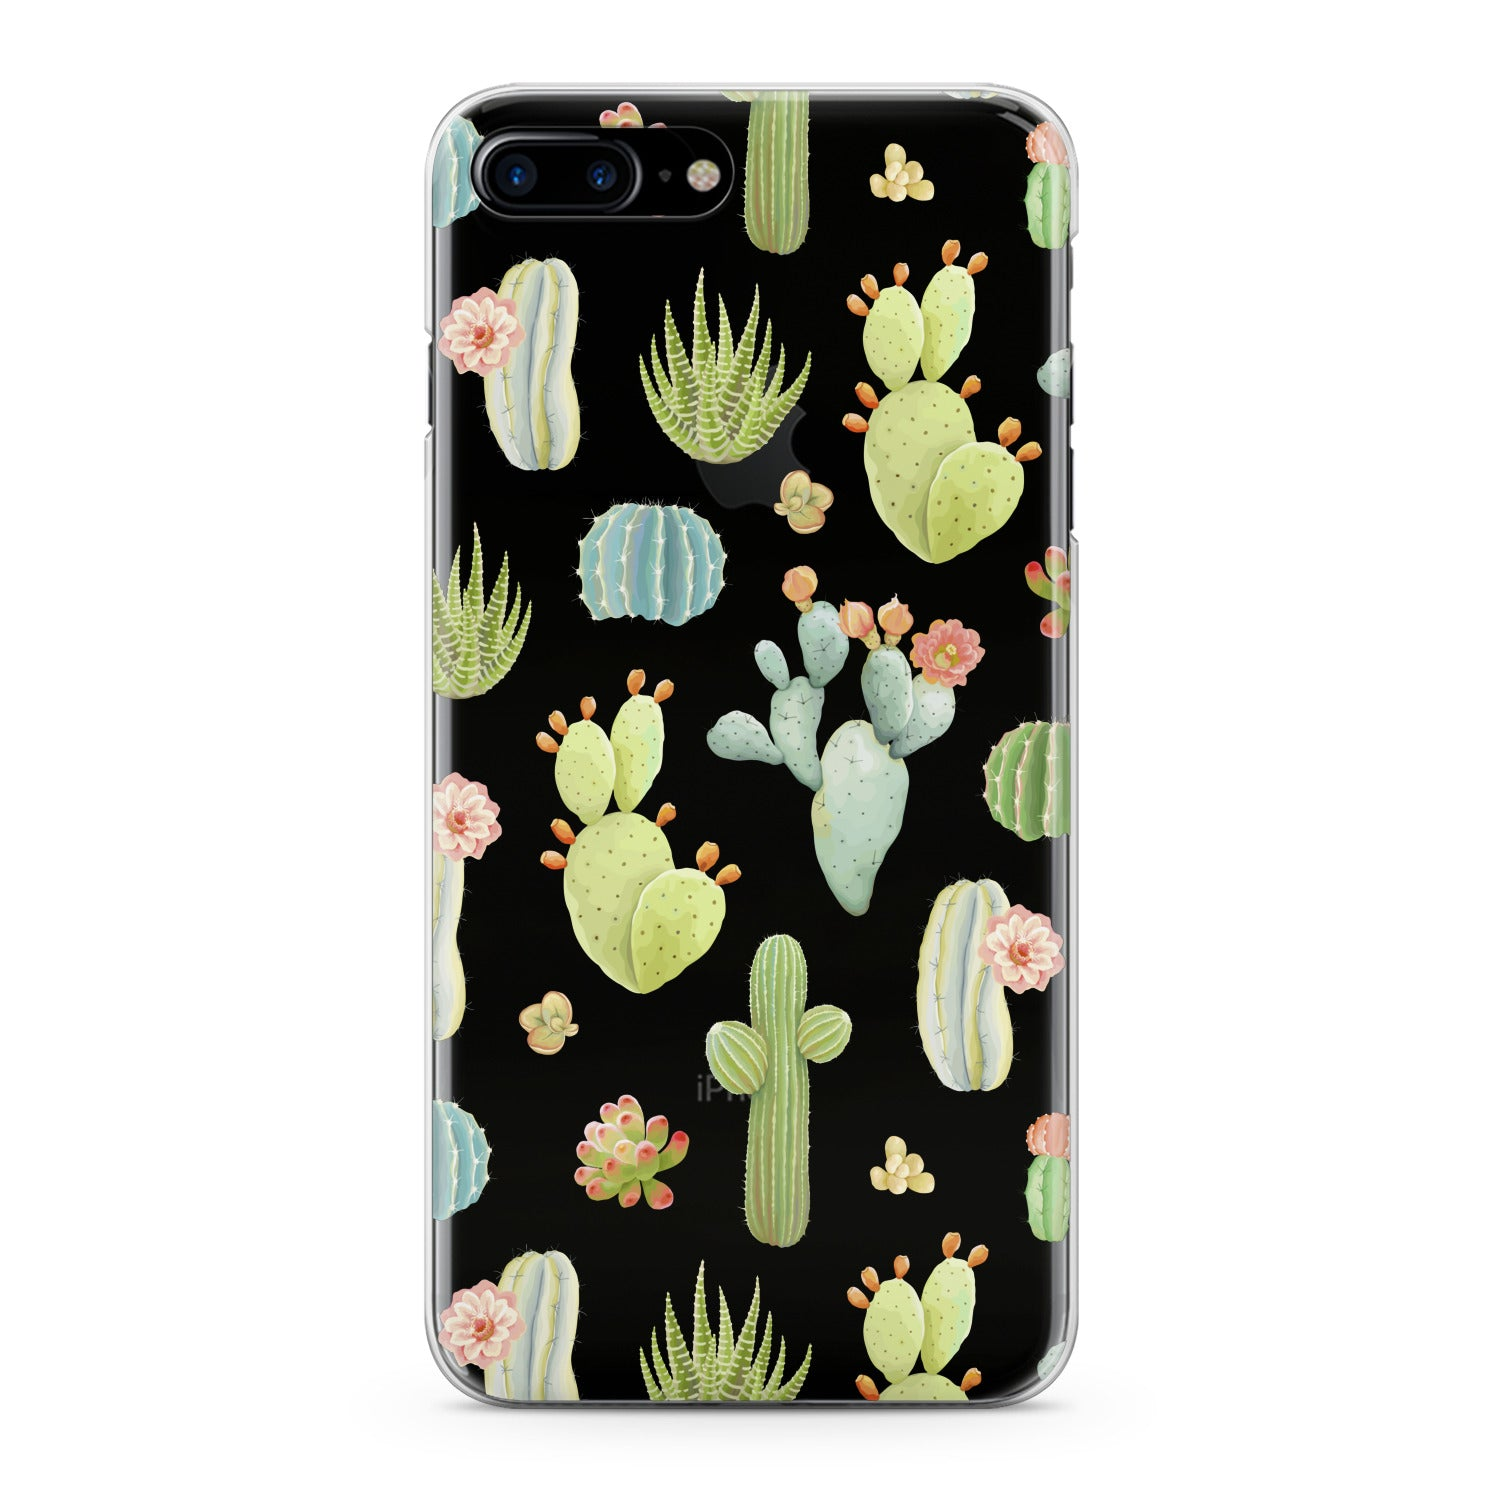 Lex Altern Pastel Cactuses Phone Case for your iPhone & Android phone.